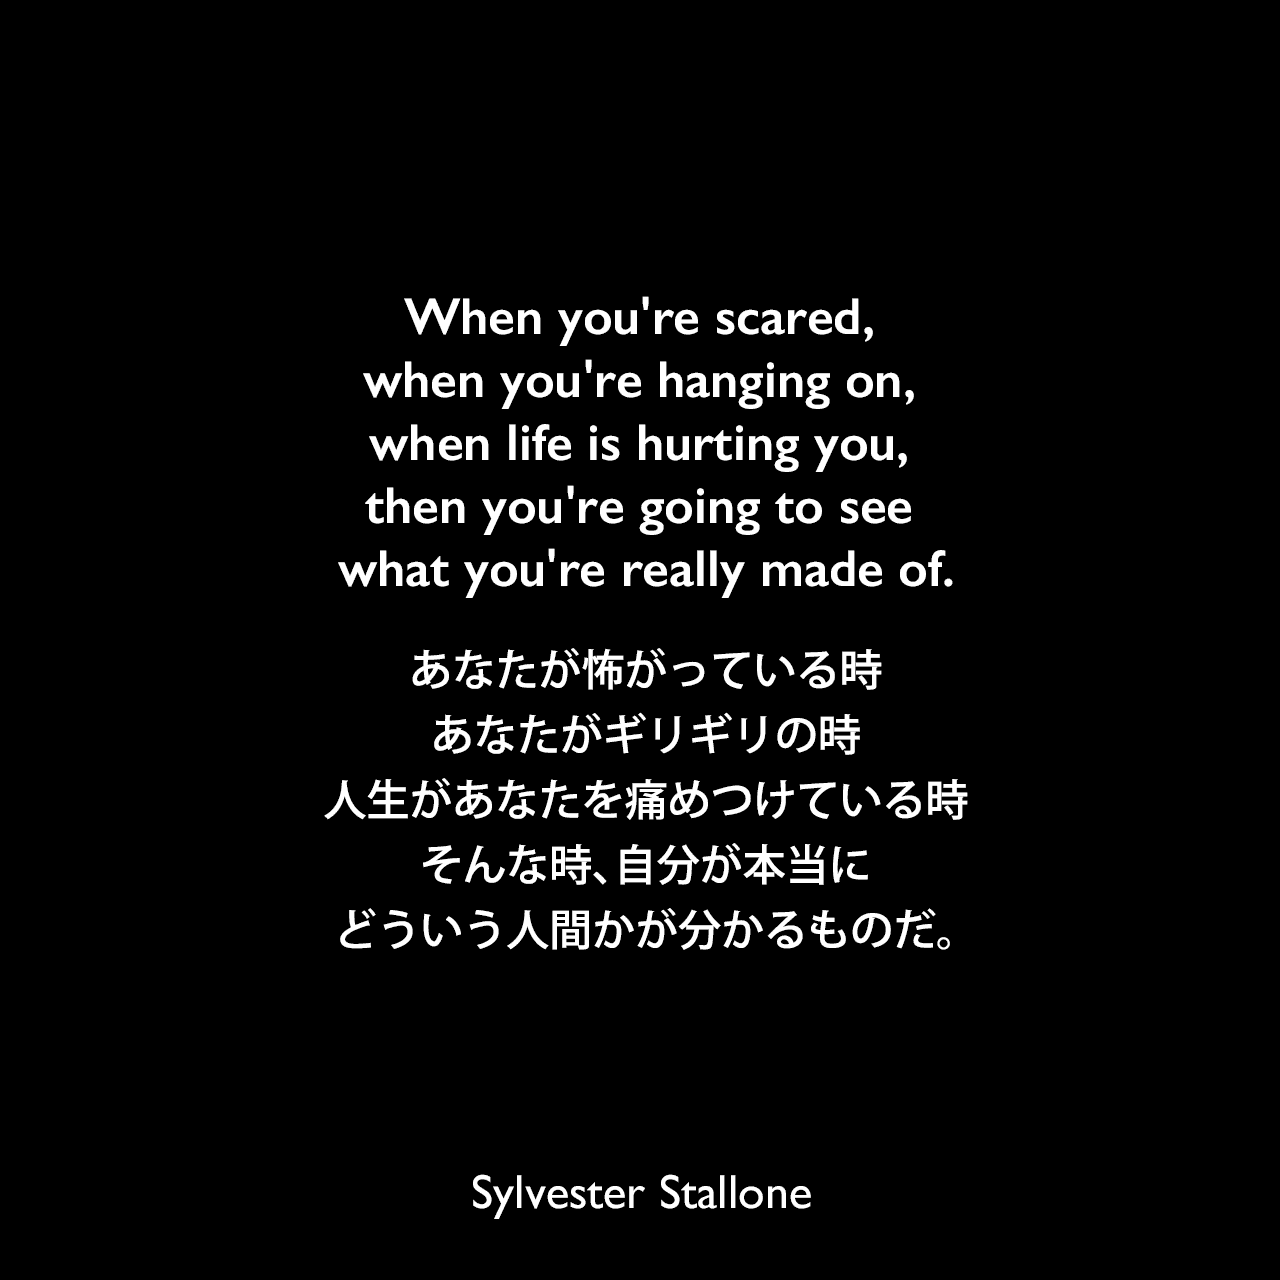 When you're scared, when you're hanging on, when life is hurting you, then you're going to see what you're really made of.あなたが怖がっている時、あなたがギリギリの時、人生があなたを痛めつけている時、そんな時、自分が本当にどういう人間かが分かるものだ。Sylvester Stallone